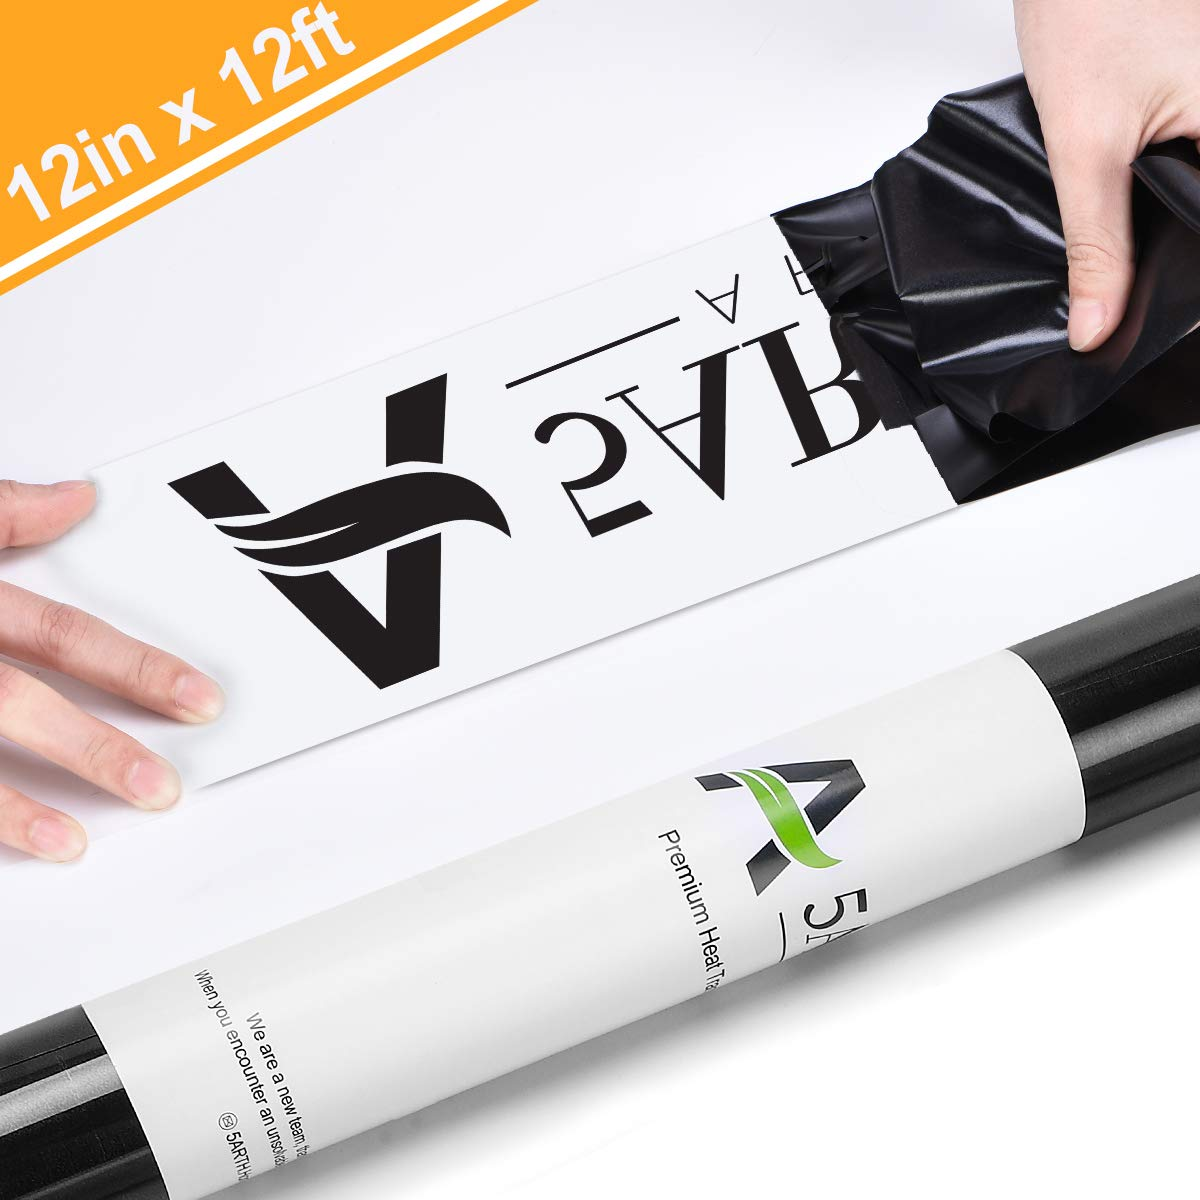 Heat Transfer Vinyl 12inch x12feet HTV Rolls - Iron on HTV Vinyl for Cricut and Silhouette Cameo Easy to Cut & EasyWeed, Make Your own Custom T-Shirt Black by 5ARTH